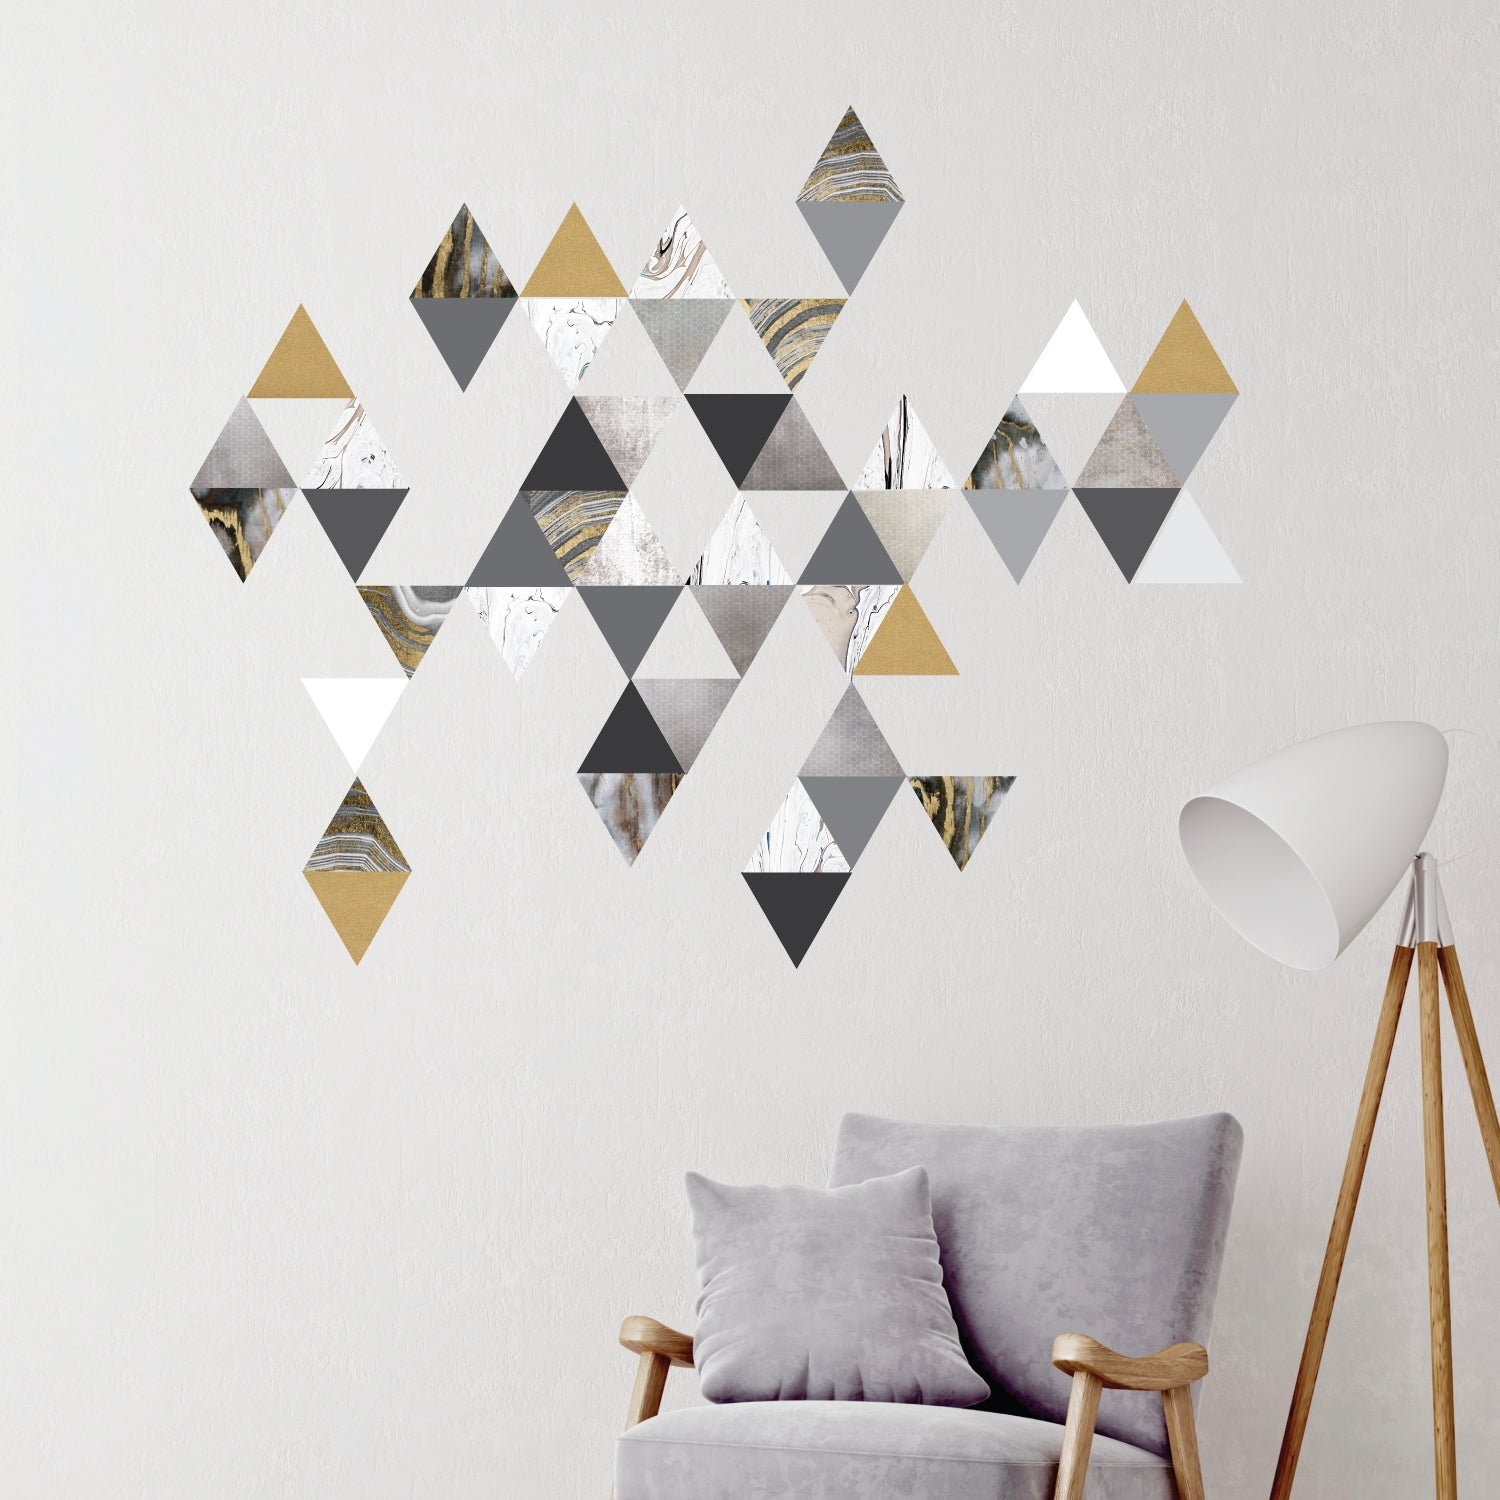 45 Modern Decals Gold Gray Marble Decals 6 Gold Triangle Decals